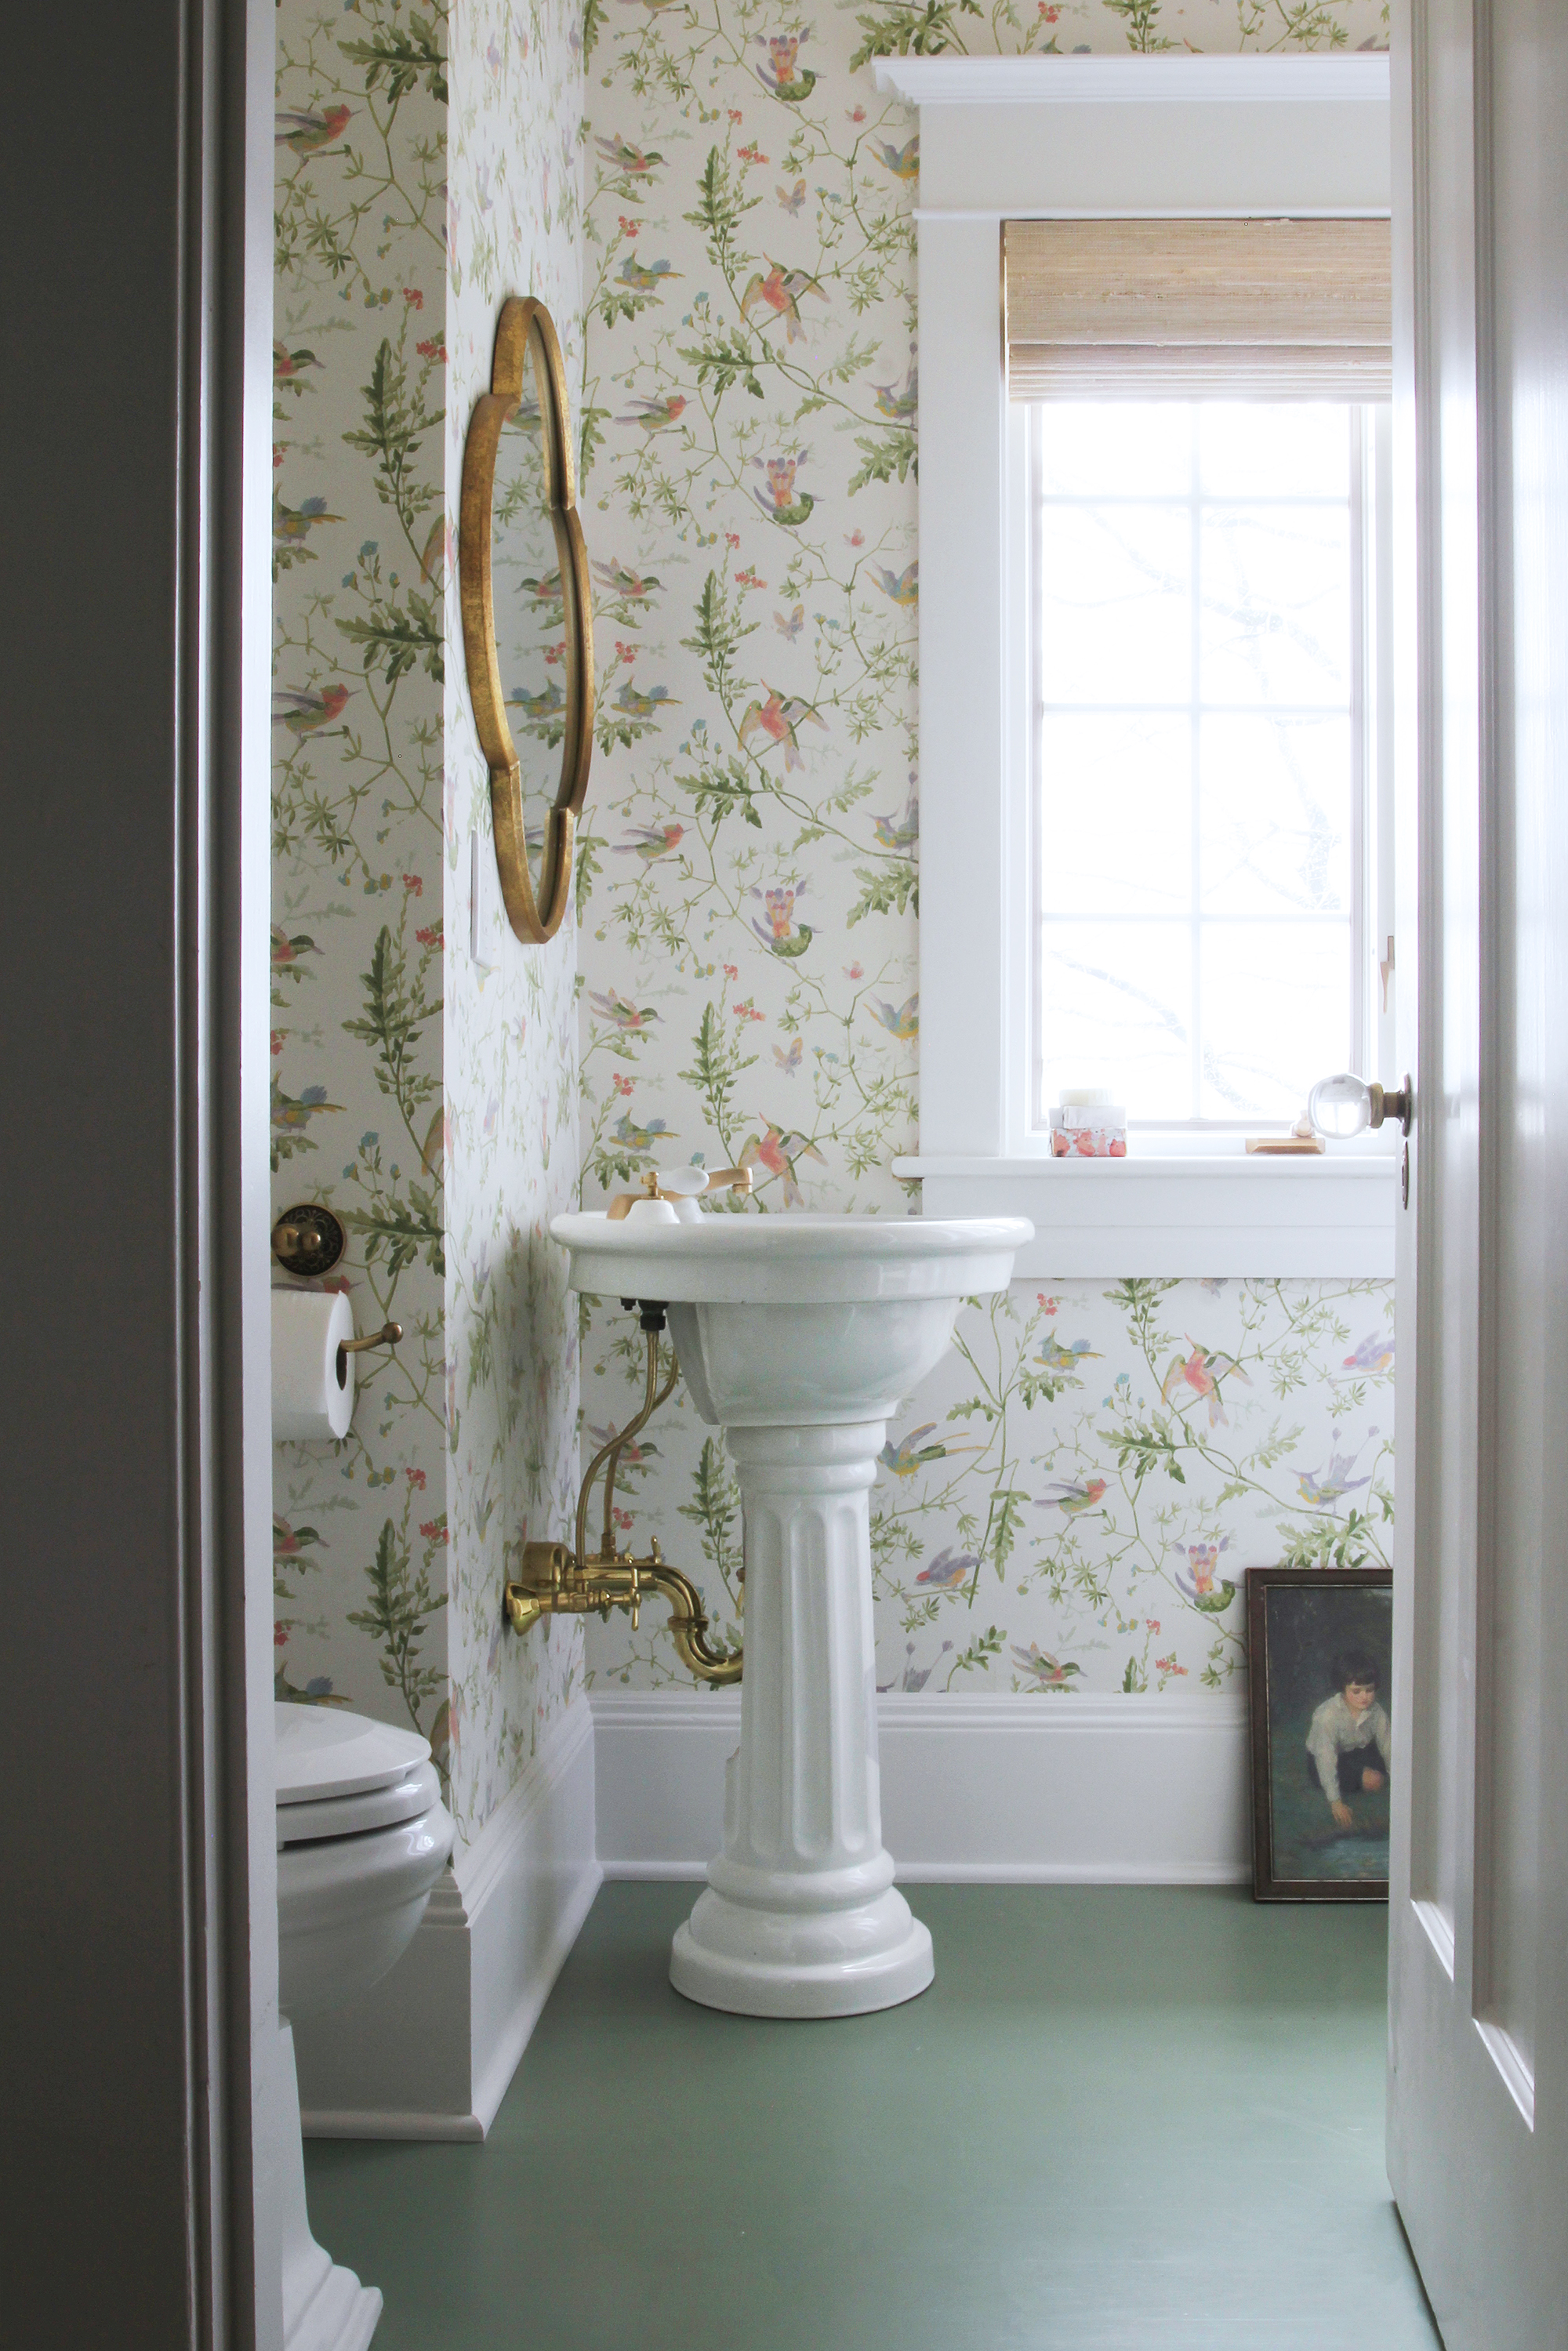 The Grit and Polish - Terrs House Bathroom from door.jpg